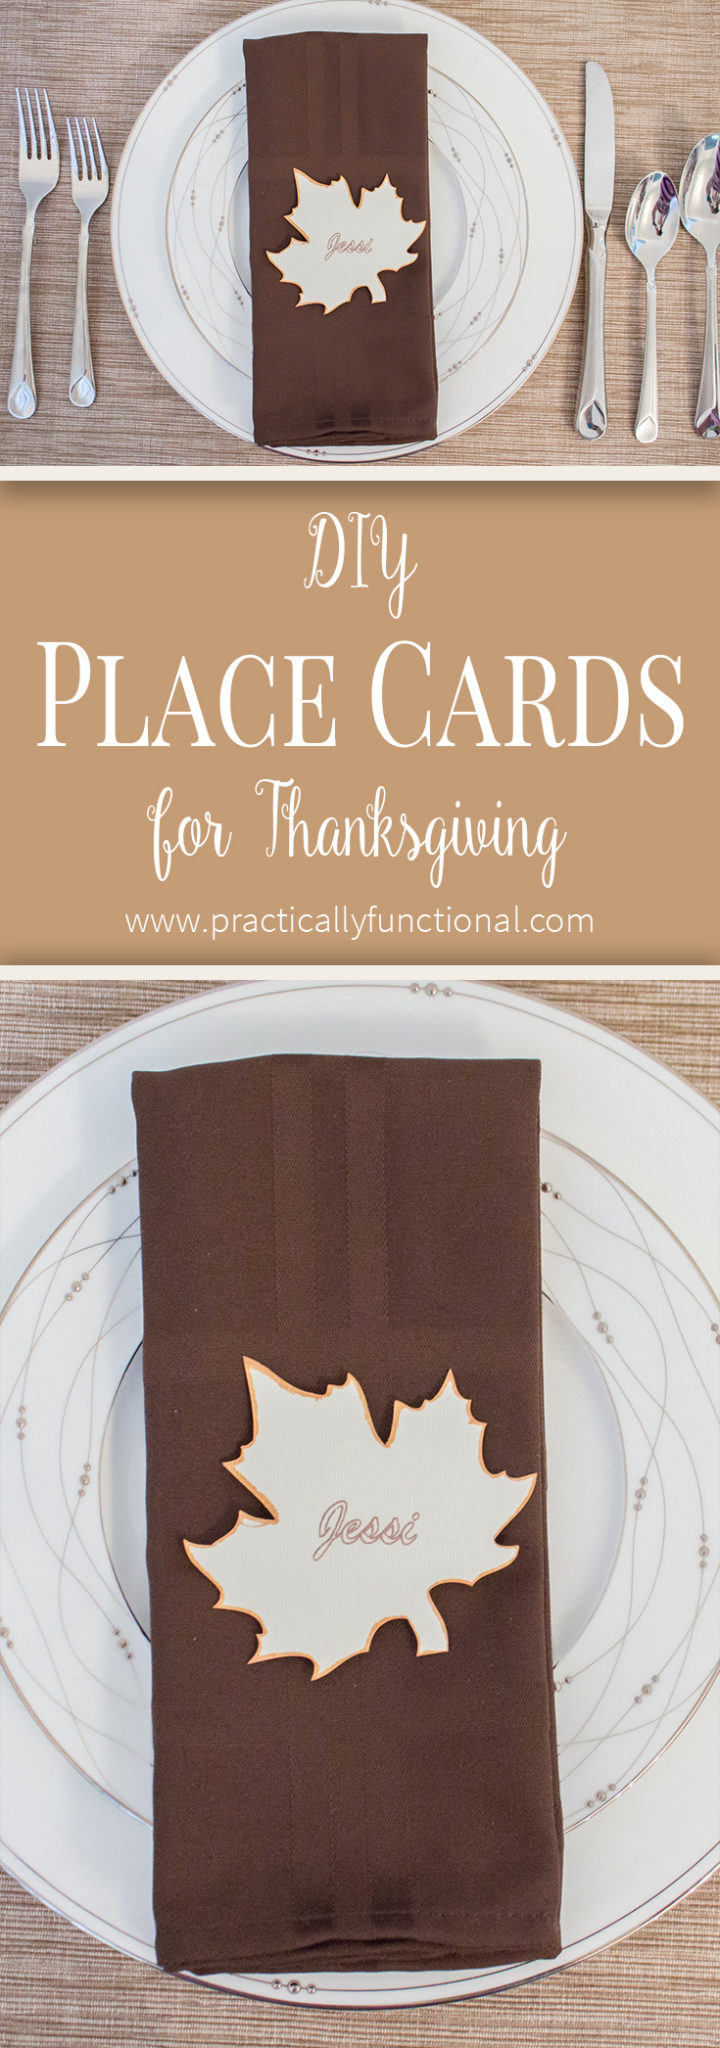 These simple Thanksgiving place cards are such an elegant and festive way to dress up your table, and they're so quick and easy to make!